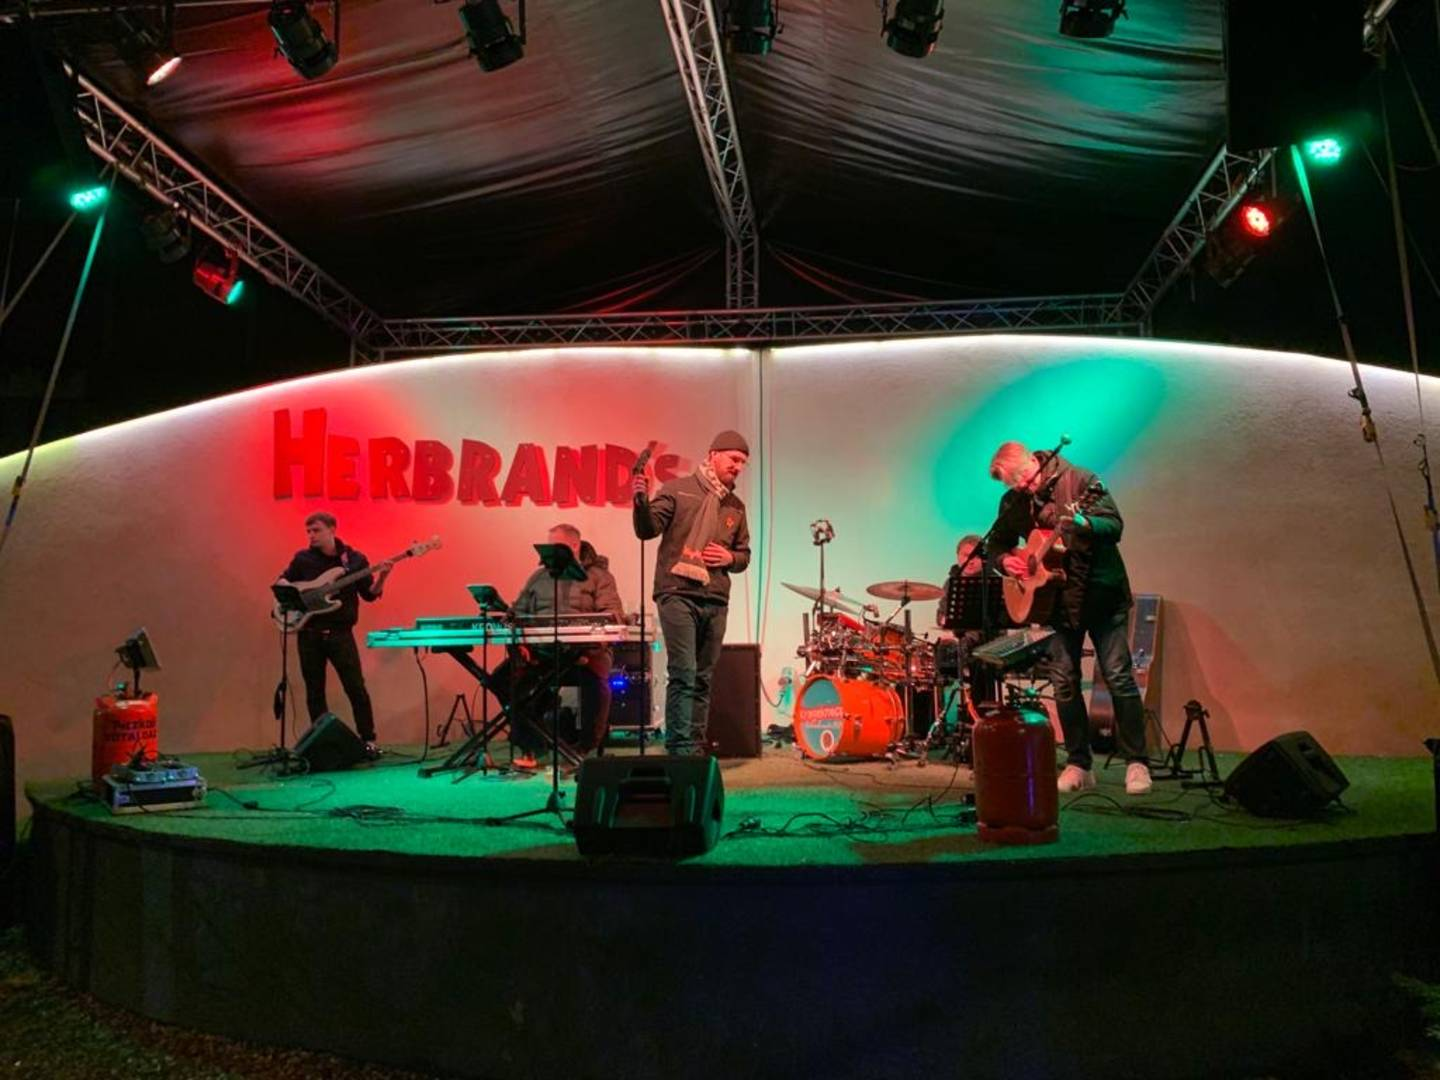 Music band performing on a stage